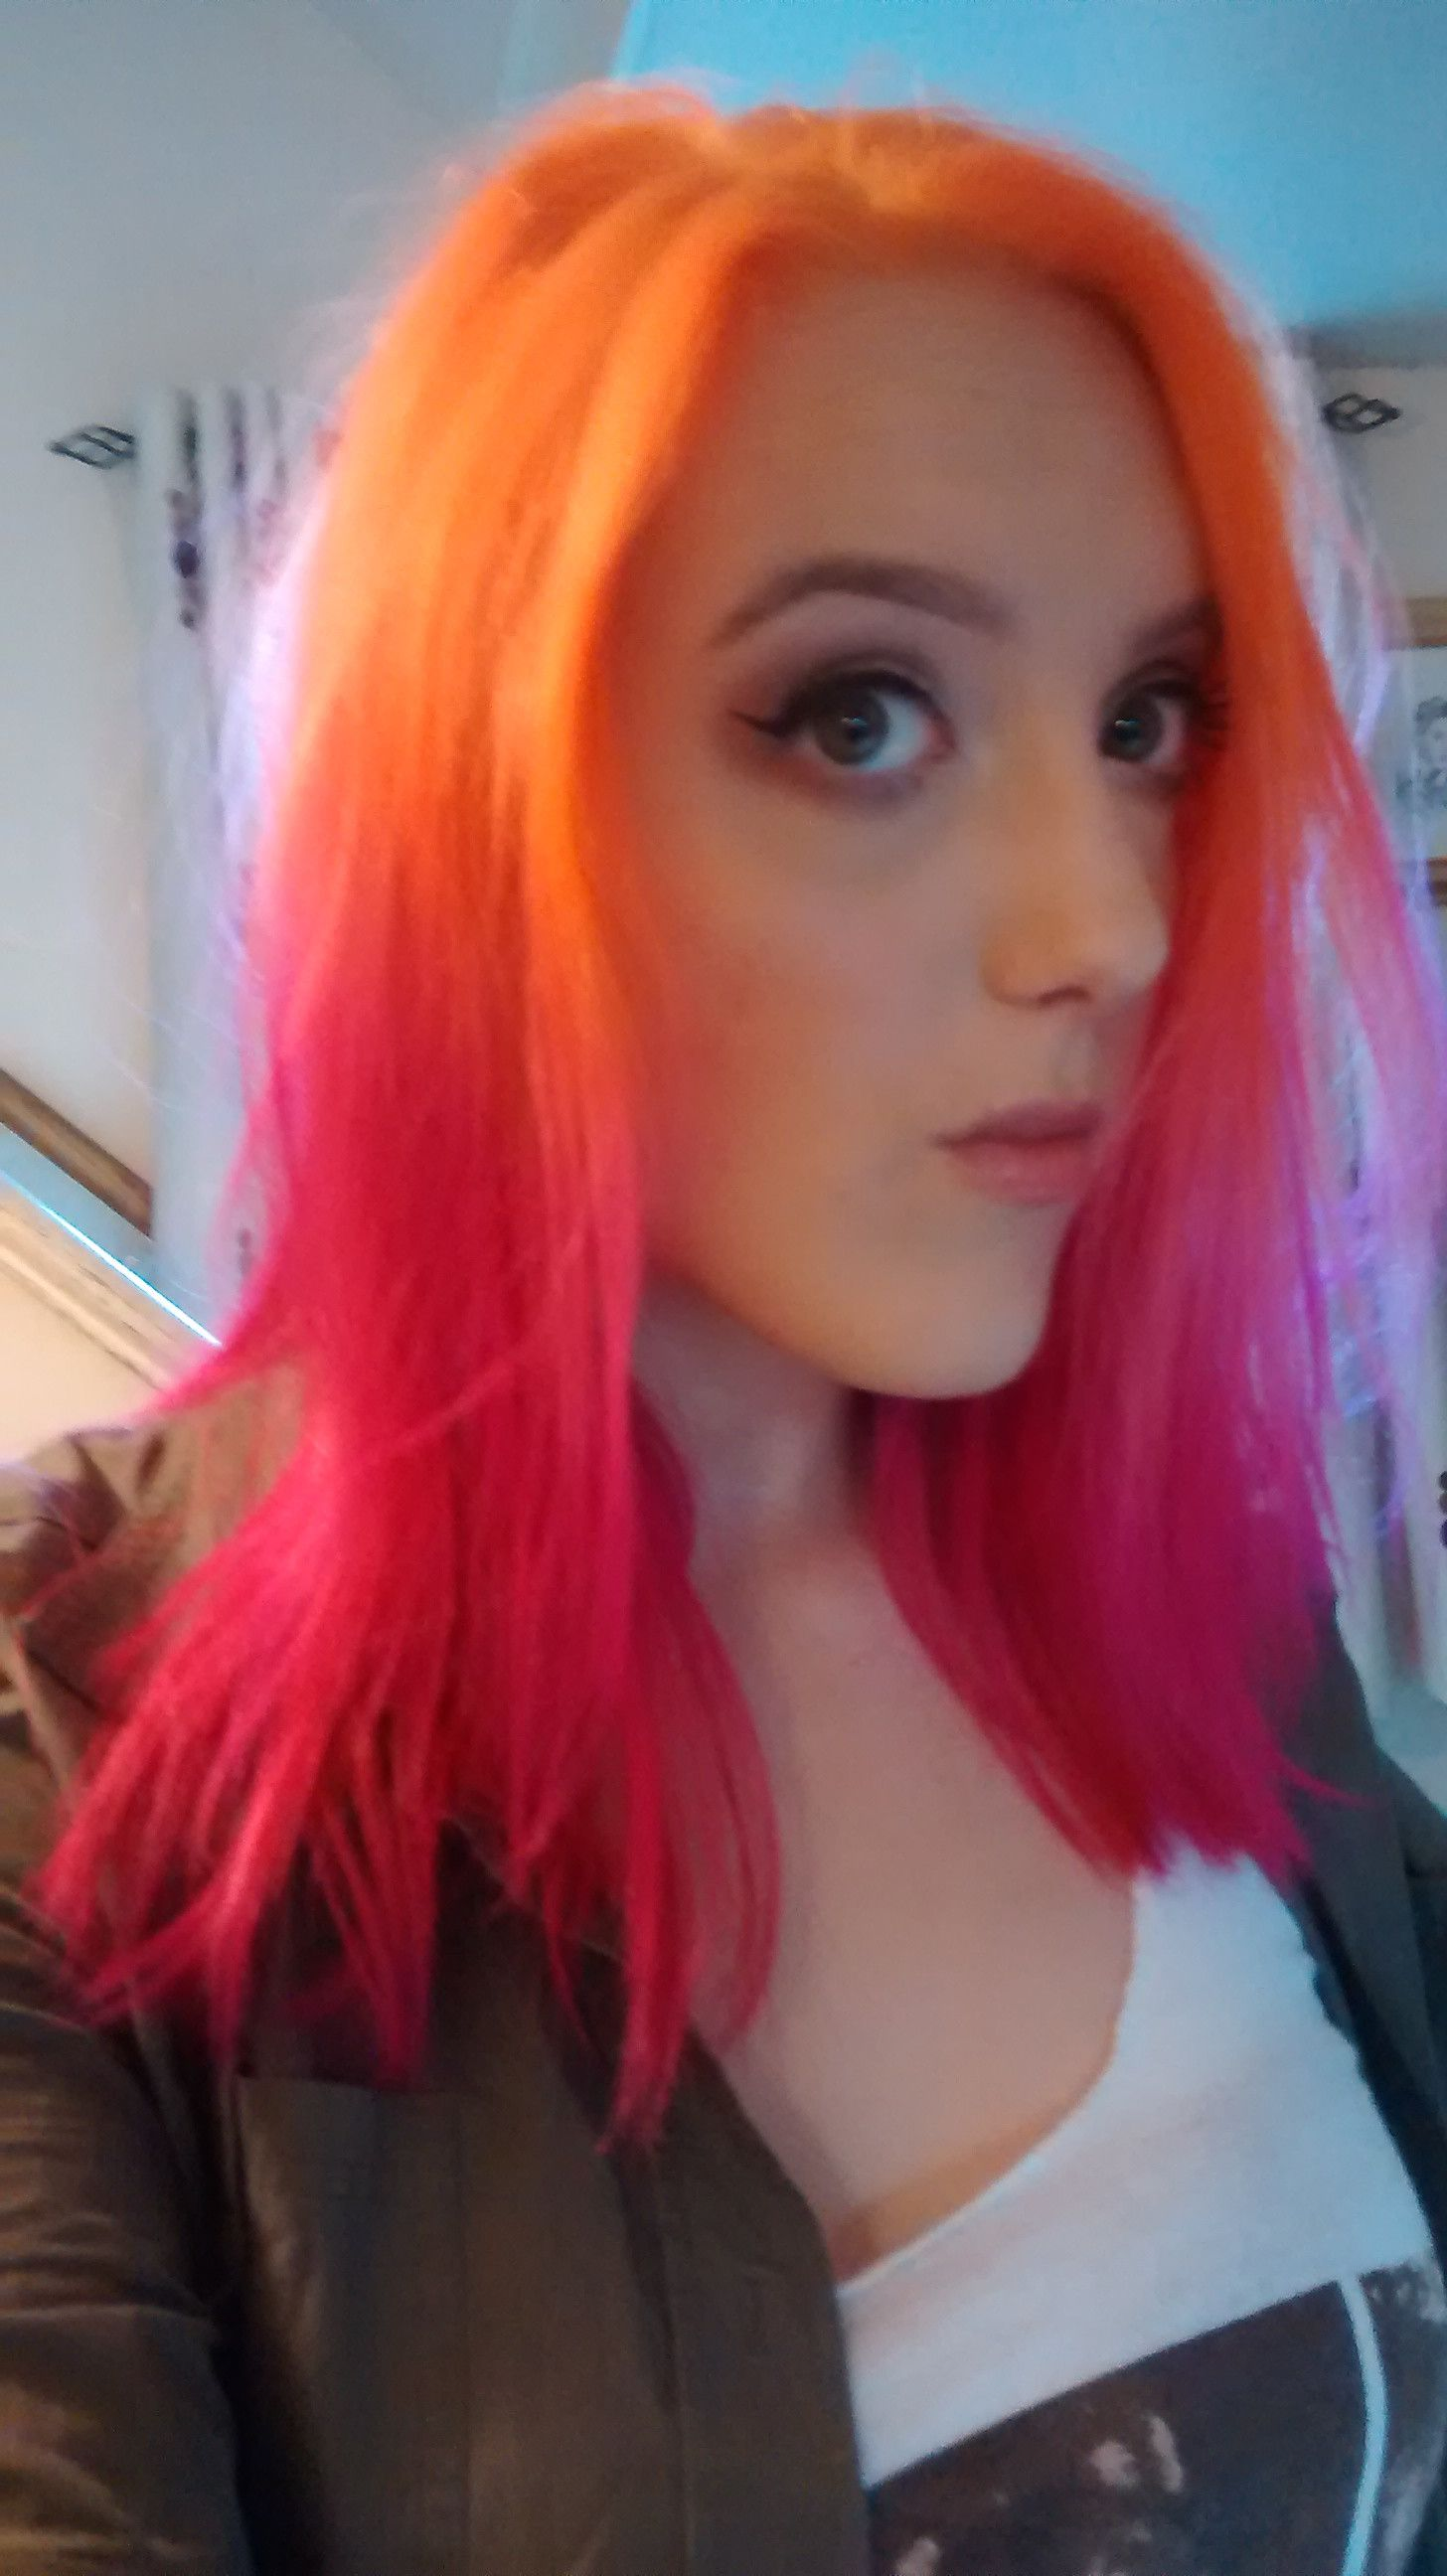 Orange And Pink La Riche Directions In Mix Of Flamingo And Carnation Pink And Apricot Orange Pink And Orange Hair Hair Color Crazy Cool Hair Color